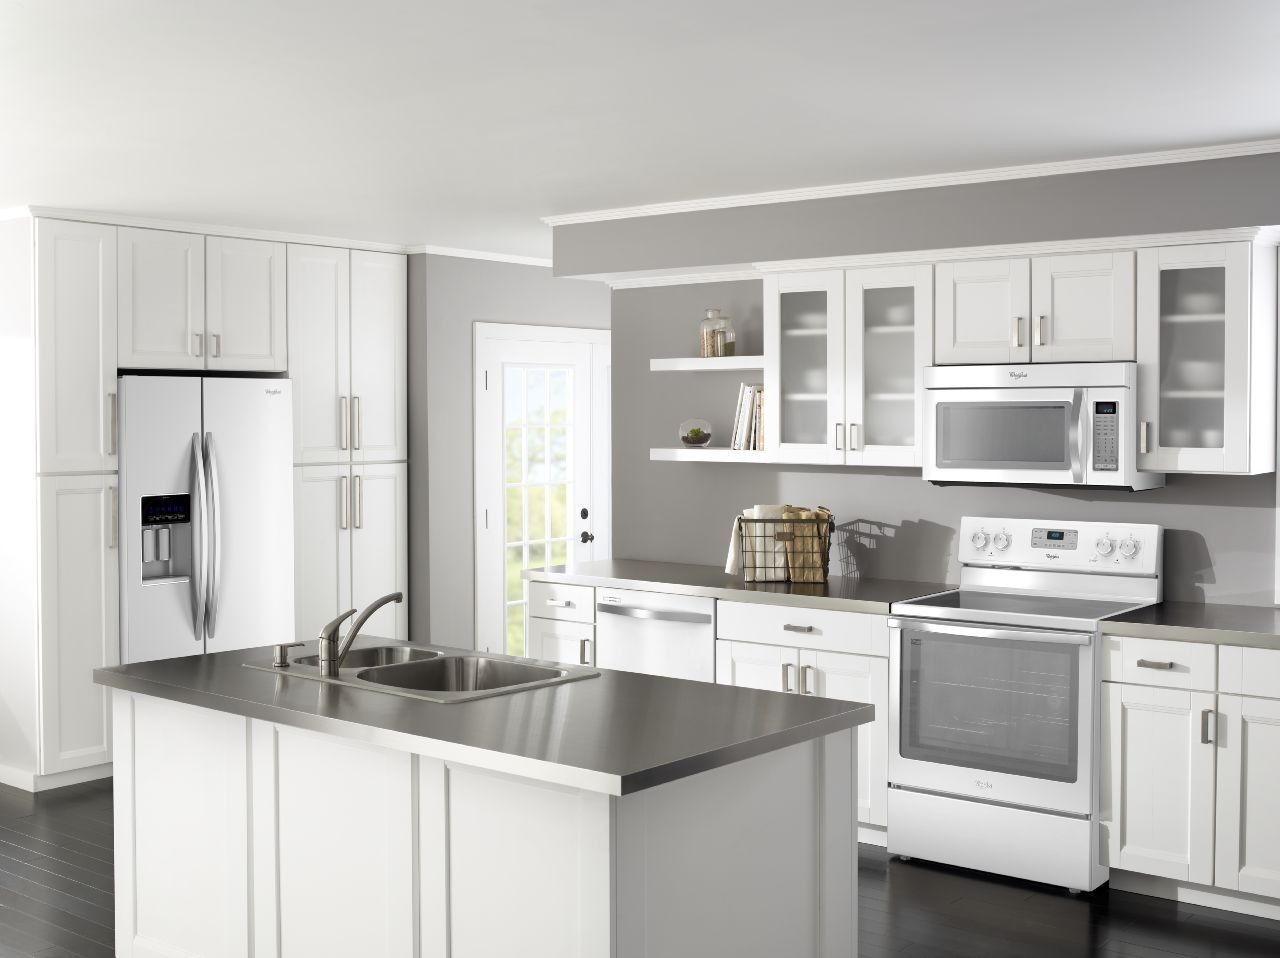 Great Modern Kitchen Appliance With Luxury Interior Nuance With White